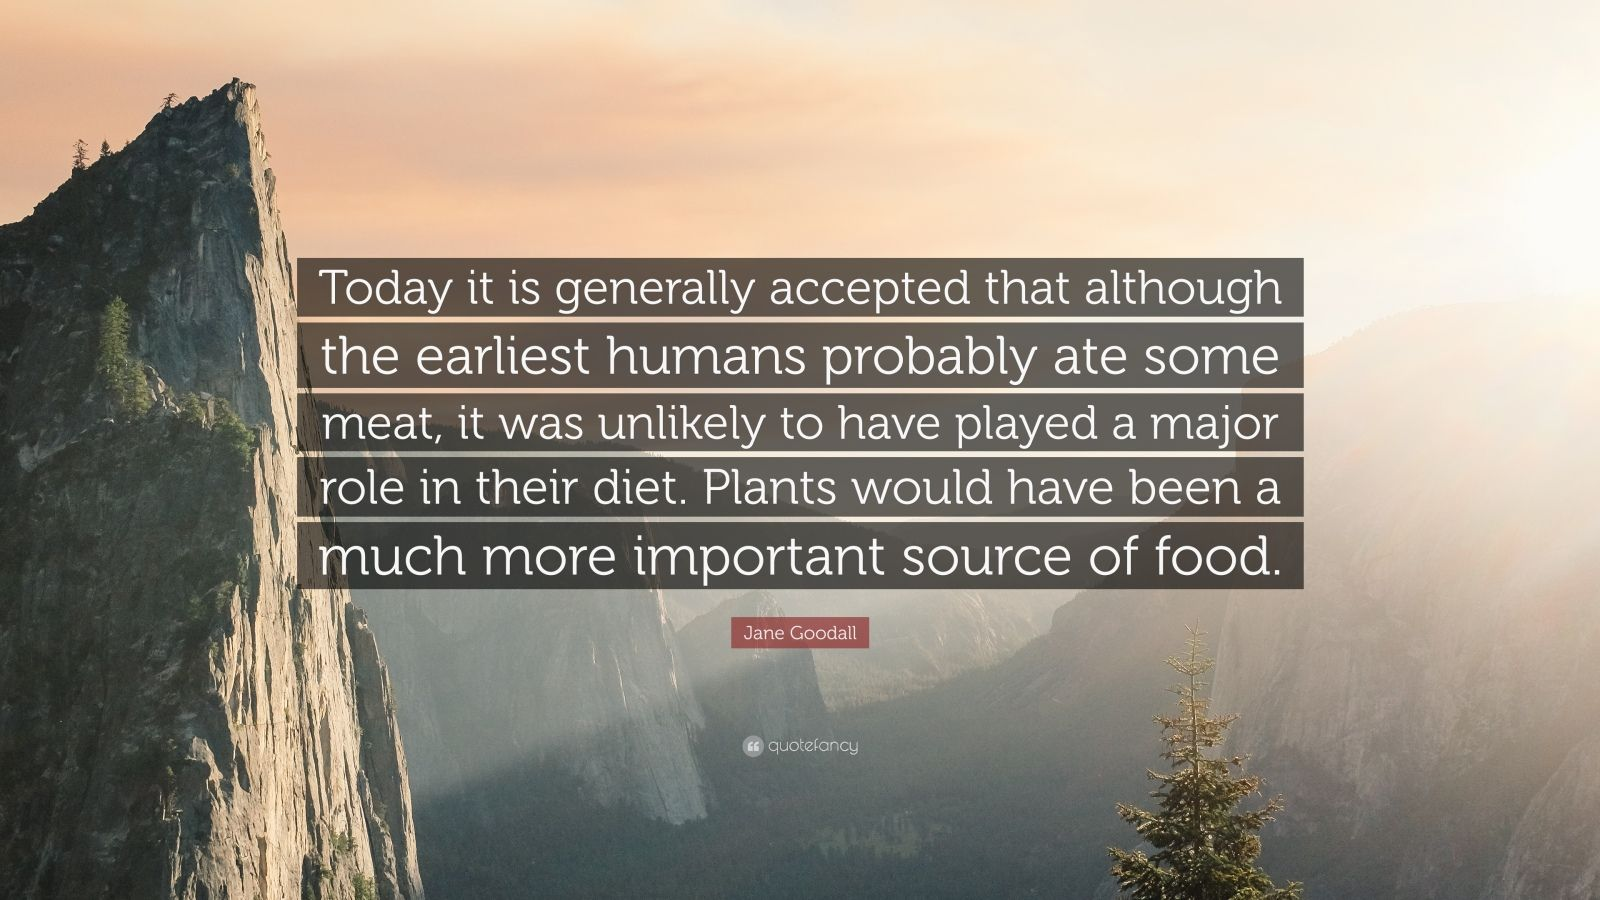 """Jane Goodall Quote: """"Today it is generally accepted that although the earliest humans probably ate some meat, it was unlikely to have played a major role in their diet. Plants would have been a much more important source of food."""""""